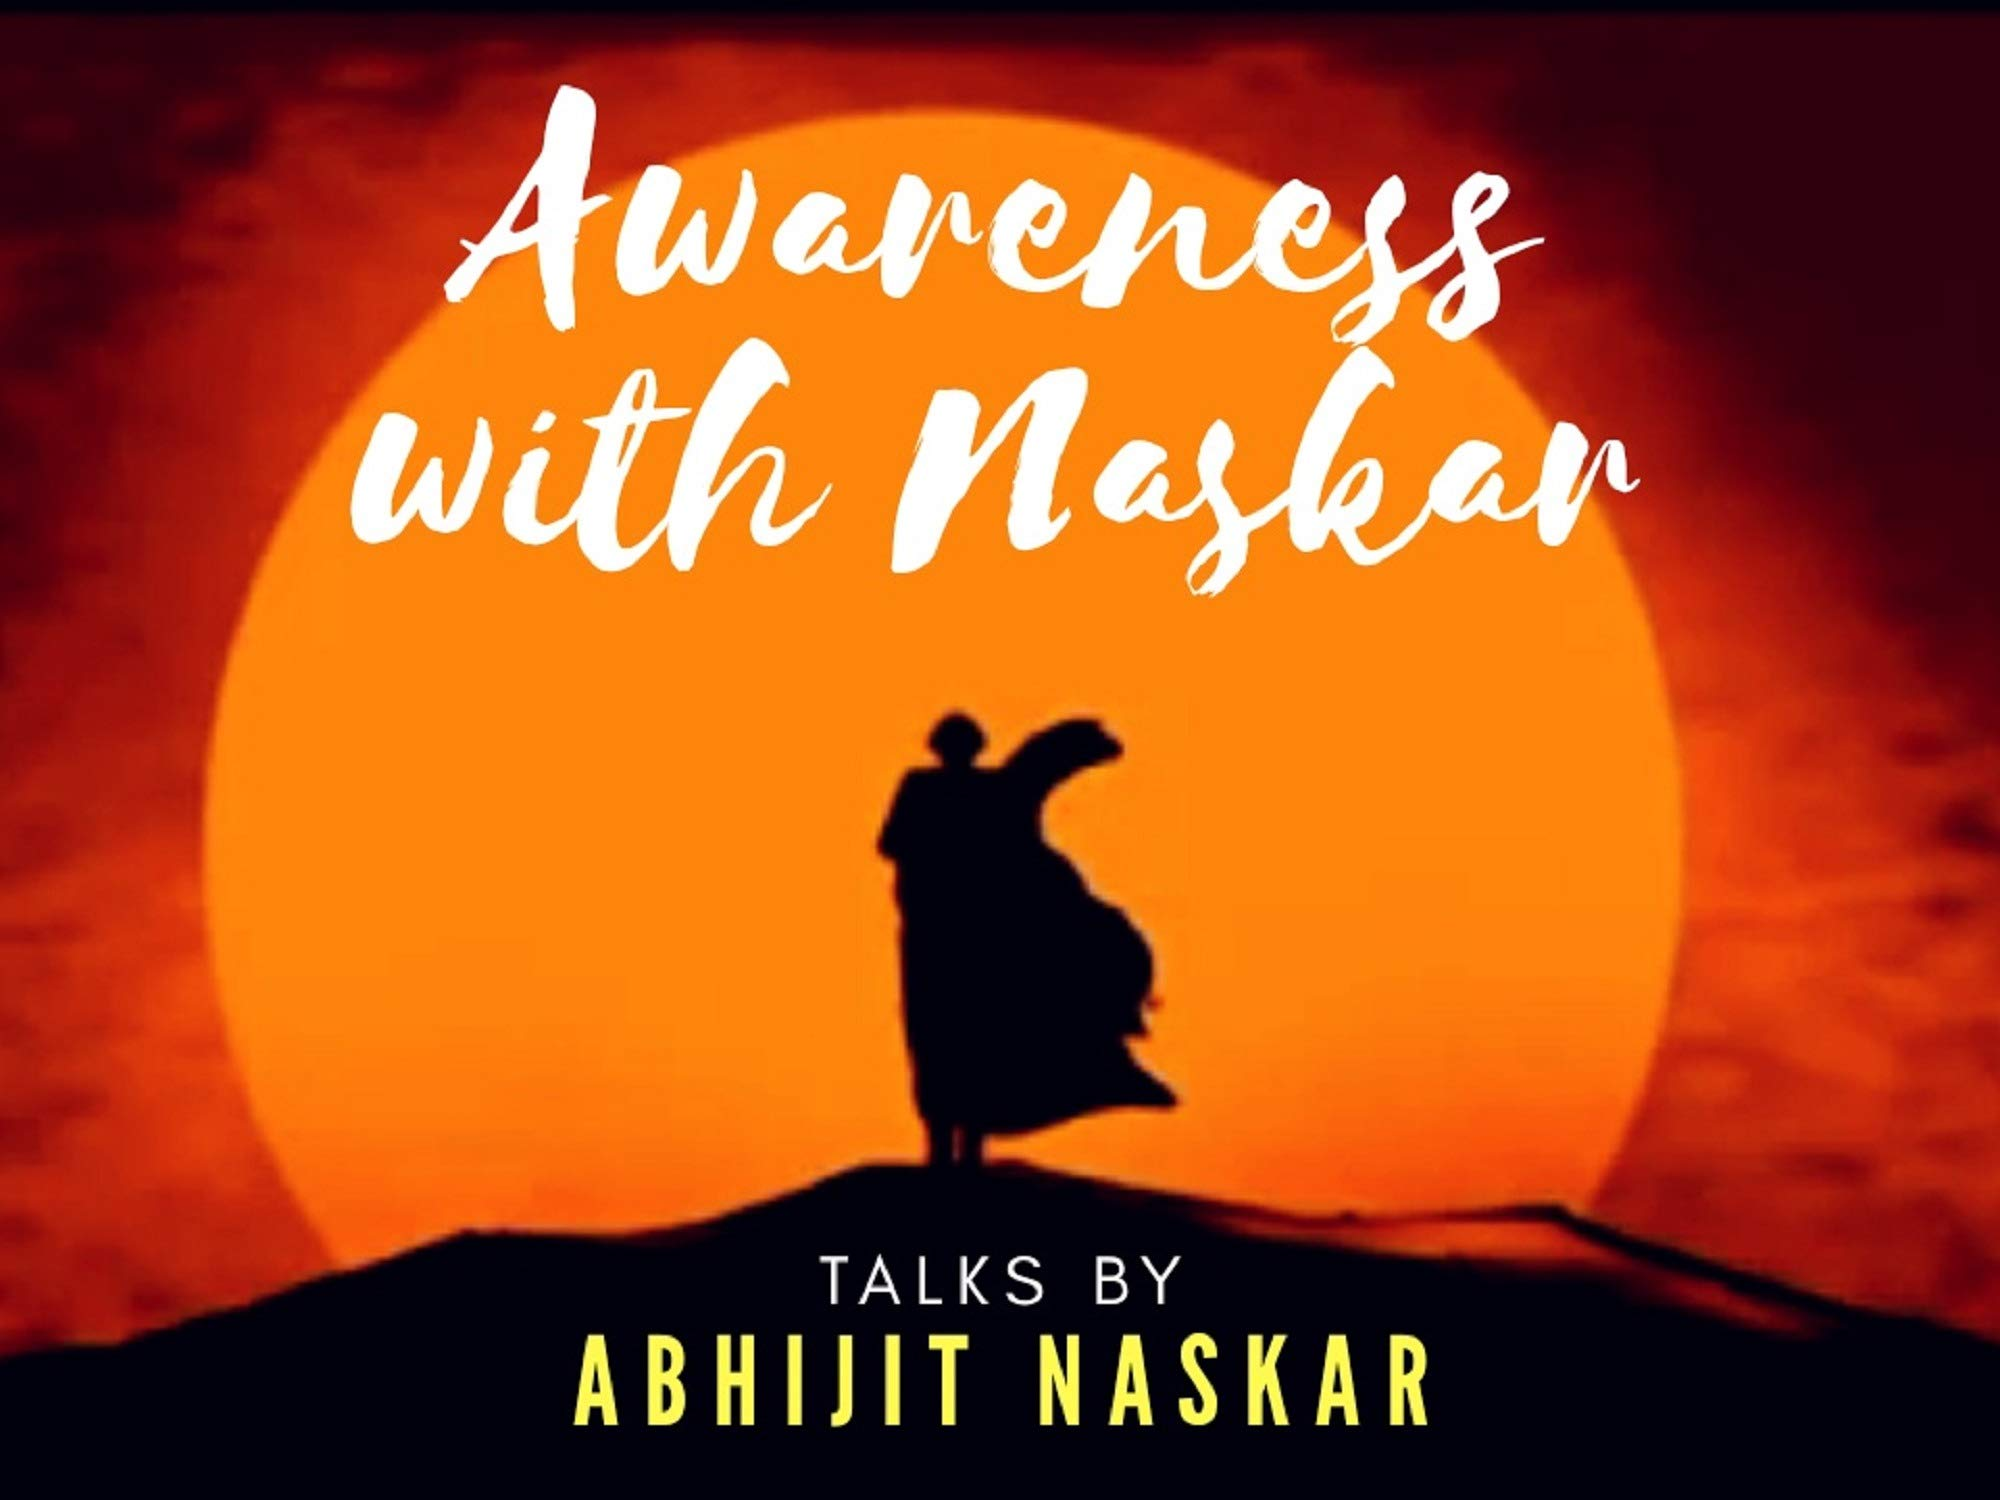 Awareness with Naskar - Talks by Abhijit Naskar